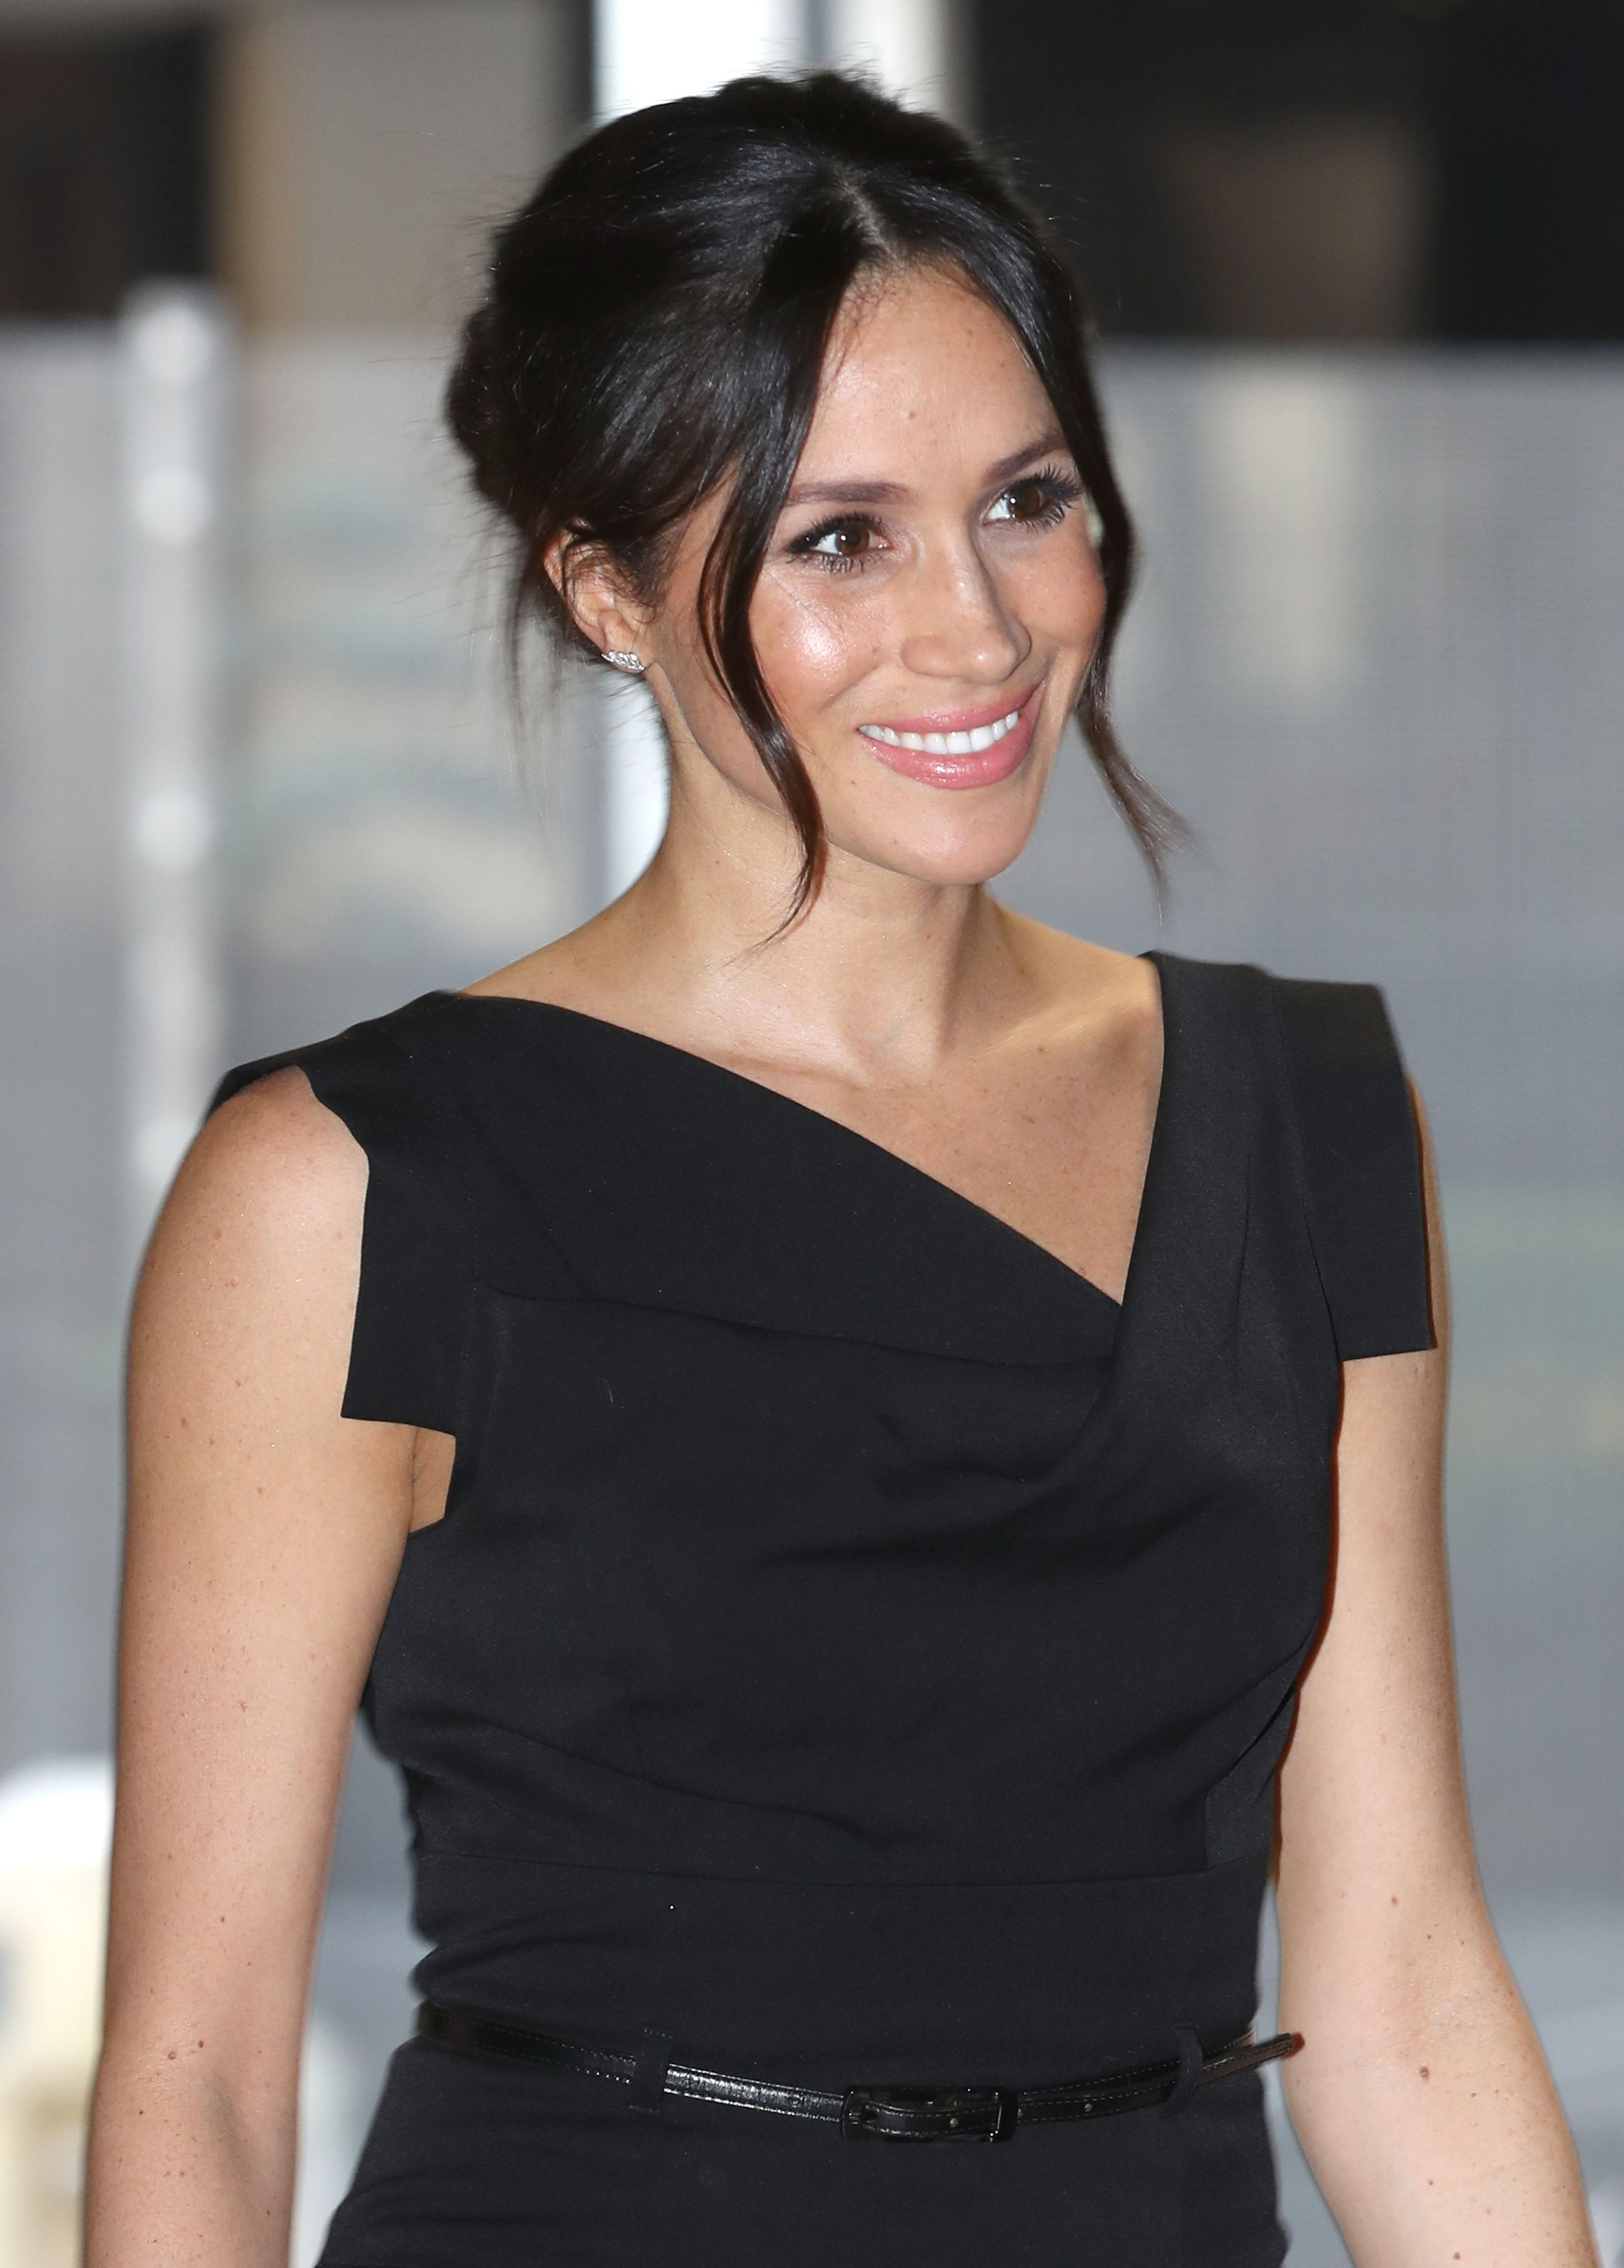 Meghan Markle's Latest Instagram Comment Left A Huge Clue About Whether Or Not She's Given Birth